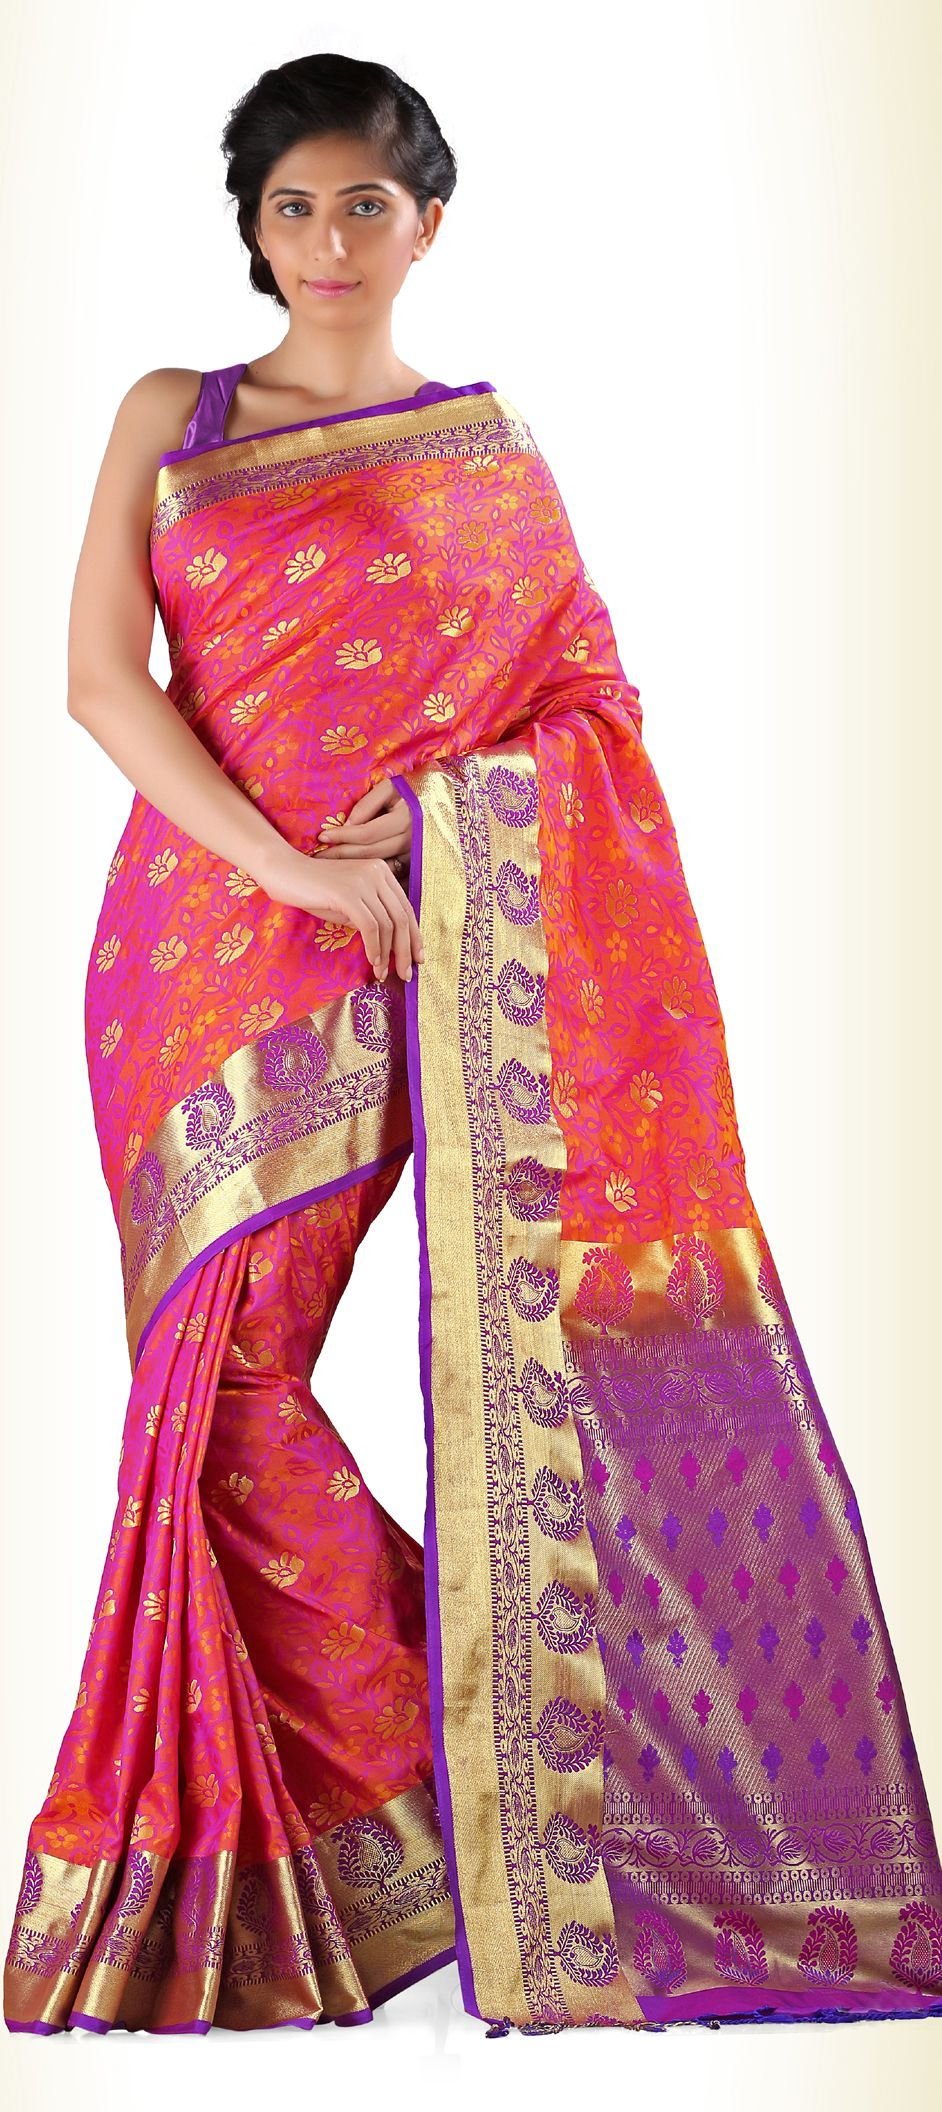 713099: Orange, Purple and Violet color family Silk Sarees with ...